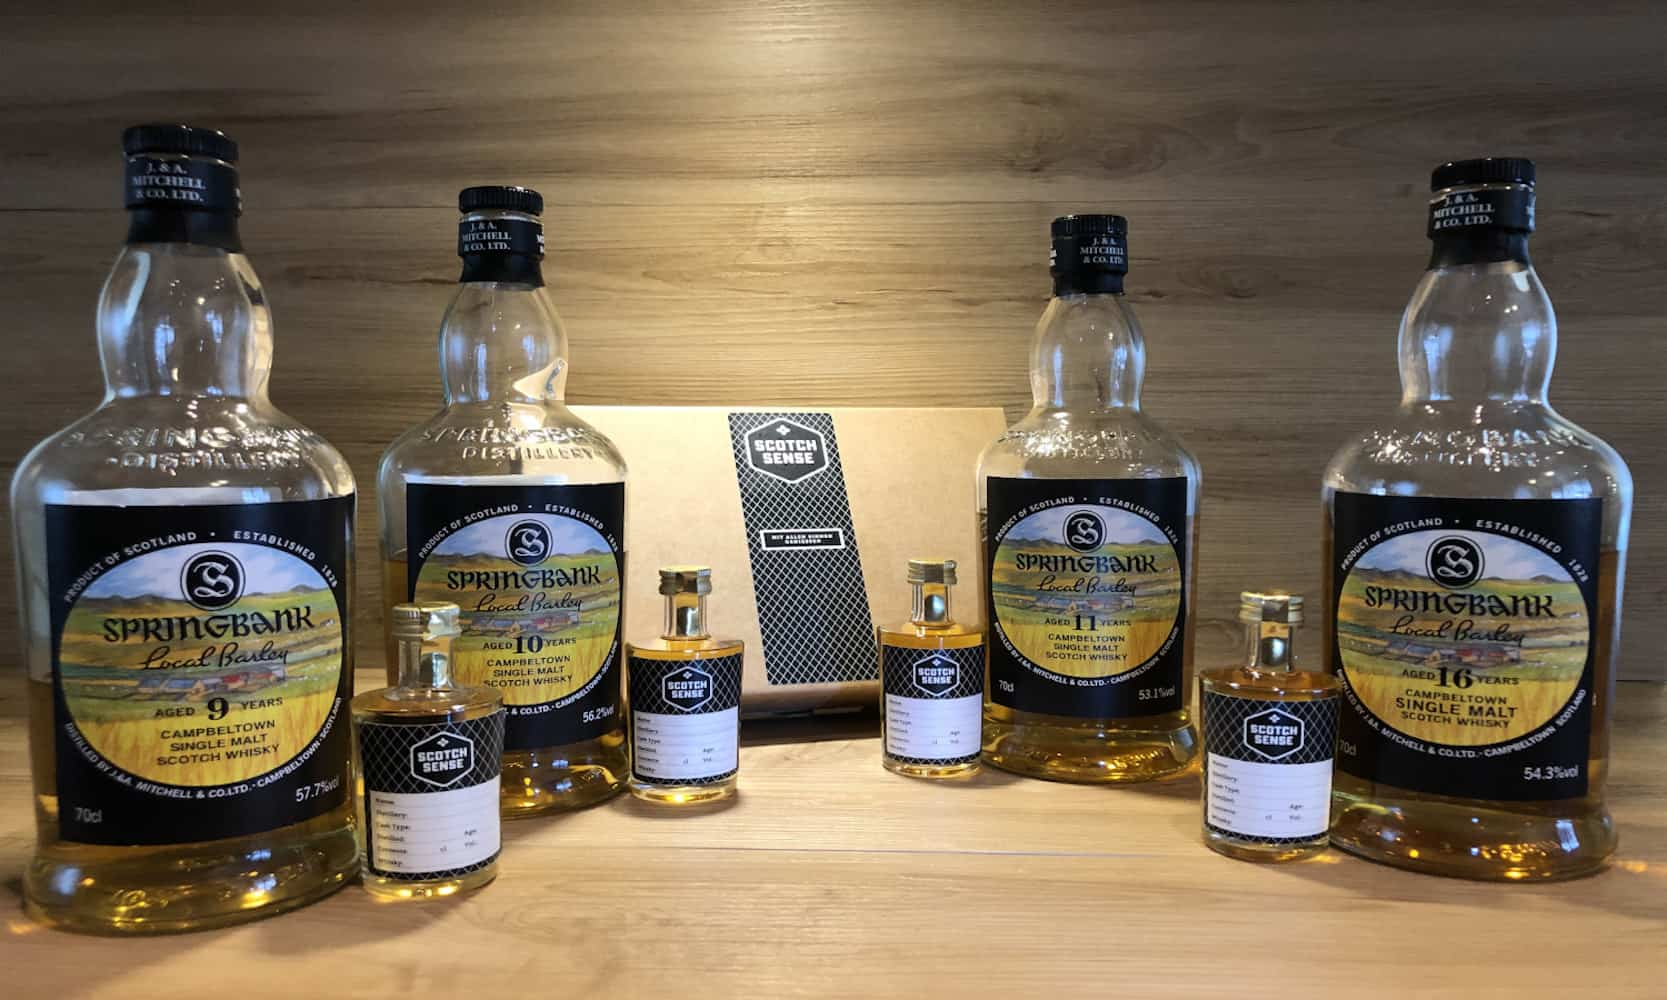 Springbank Local Barley Tasting Set Scotch Sense Whisky kaufen